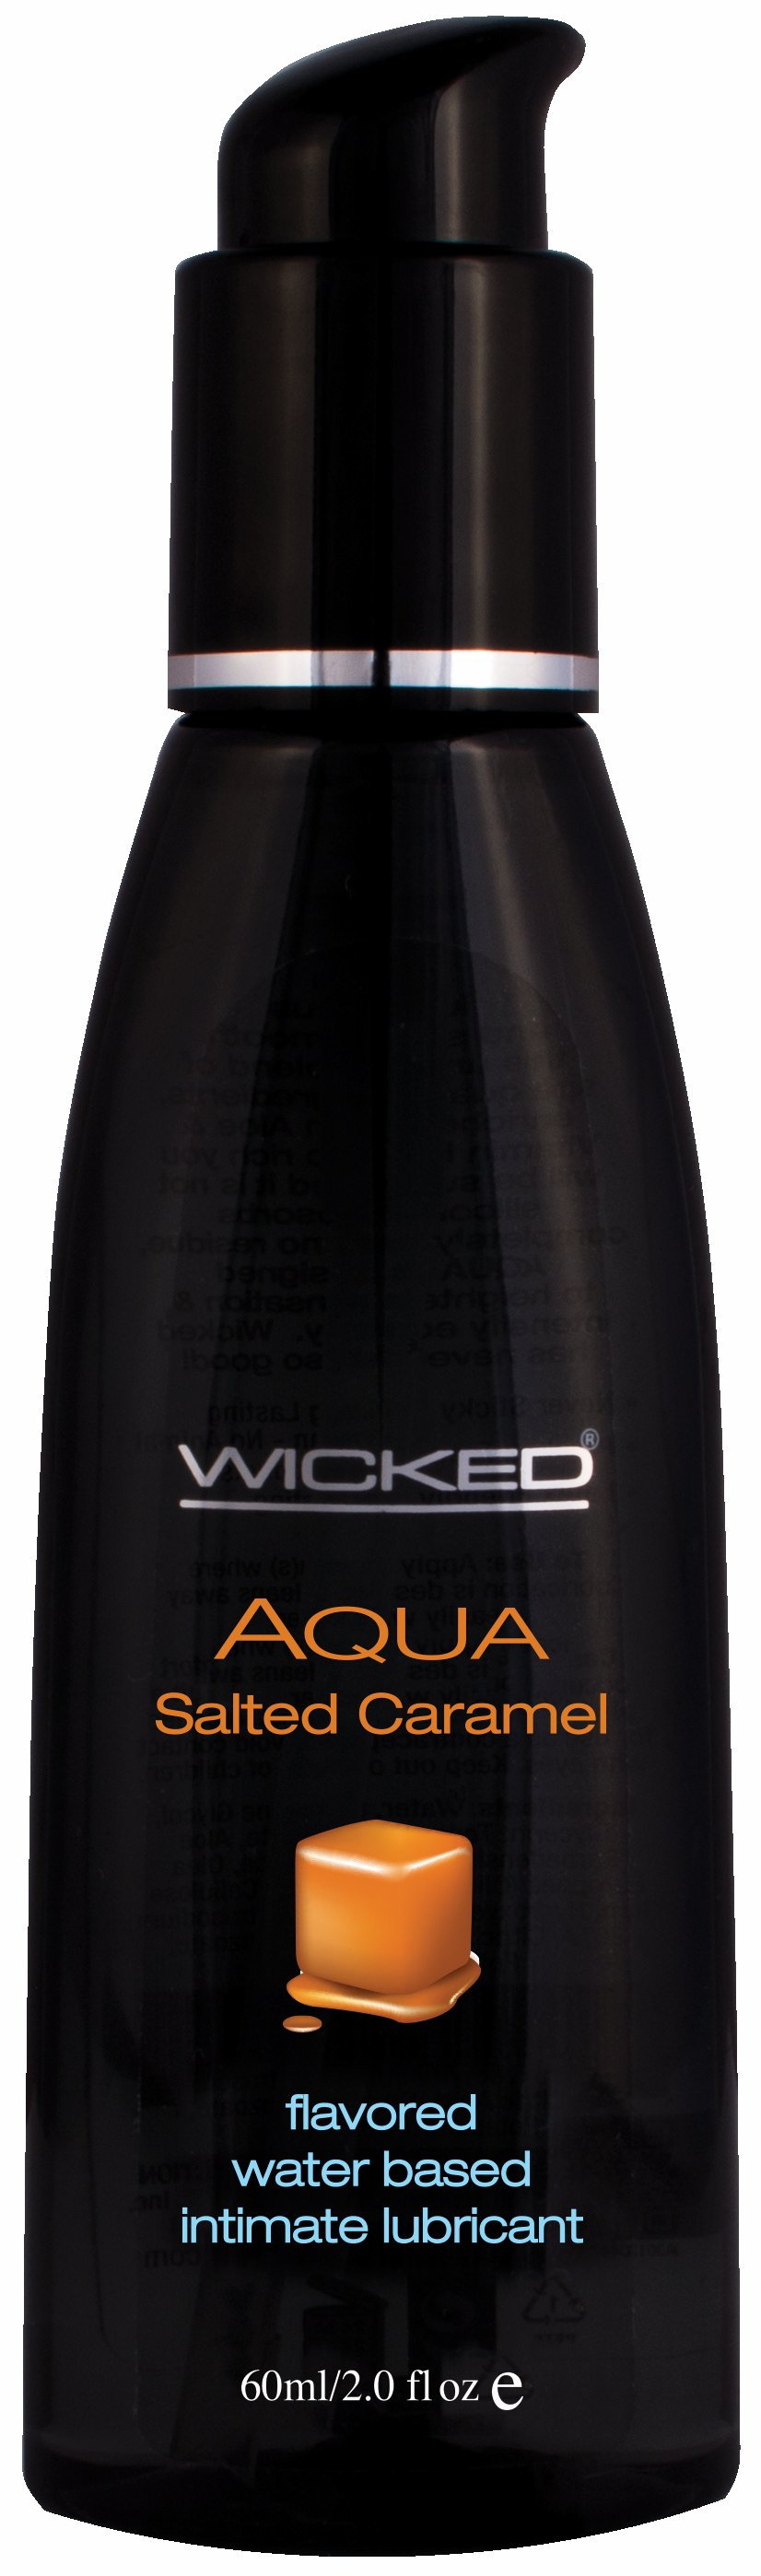 AQUA SALTED CARAMEL LUBE 2 OZ